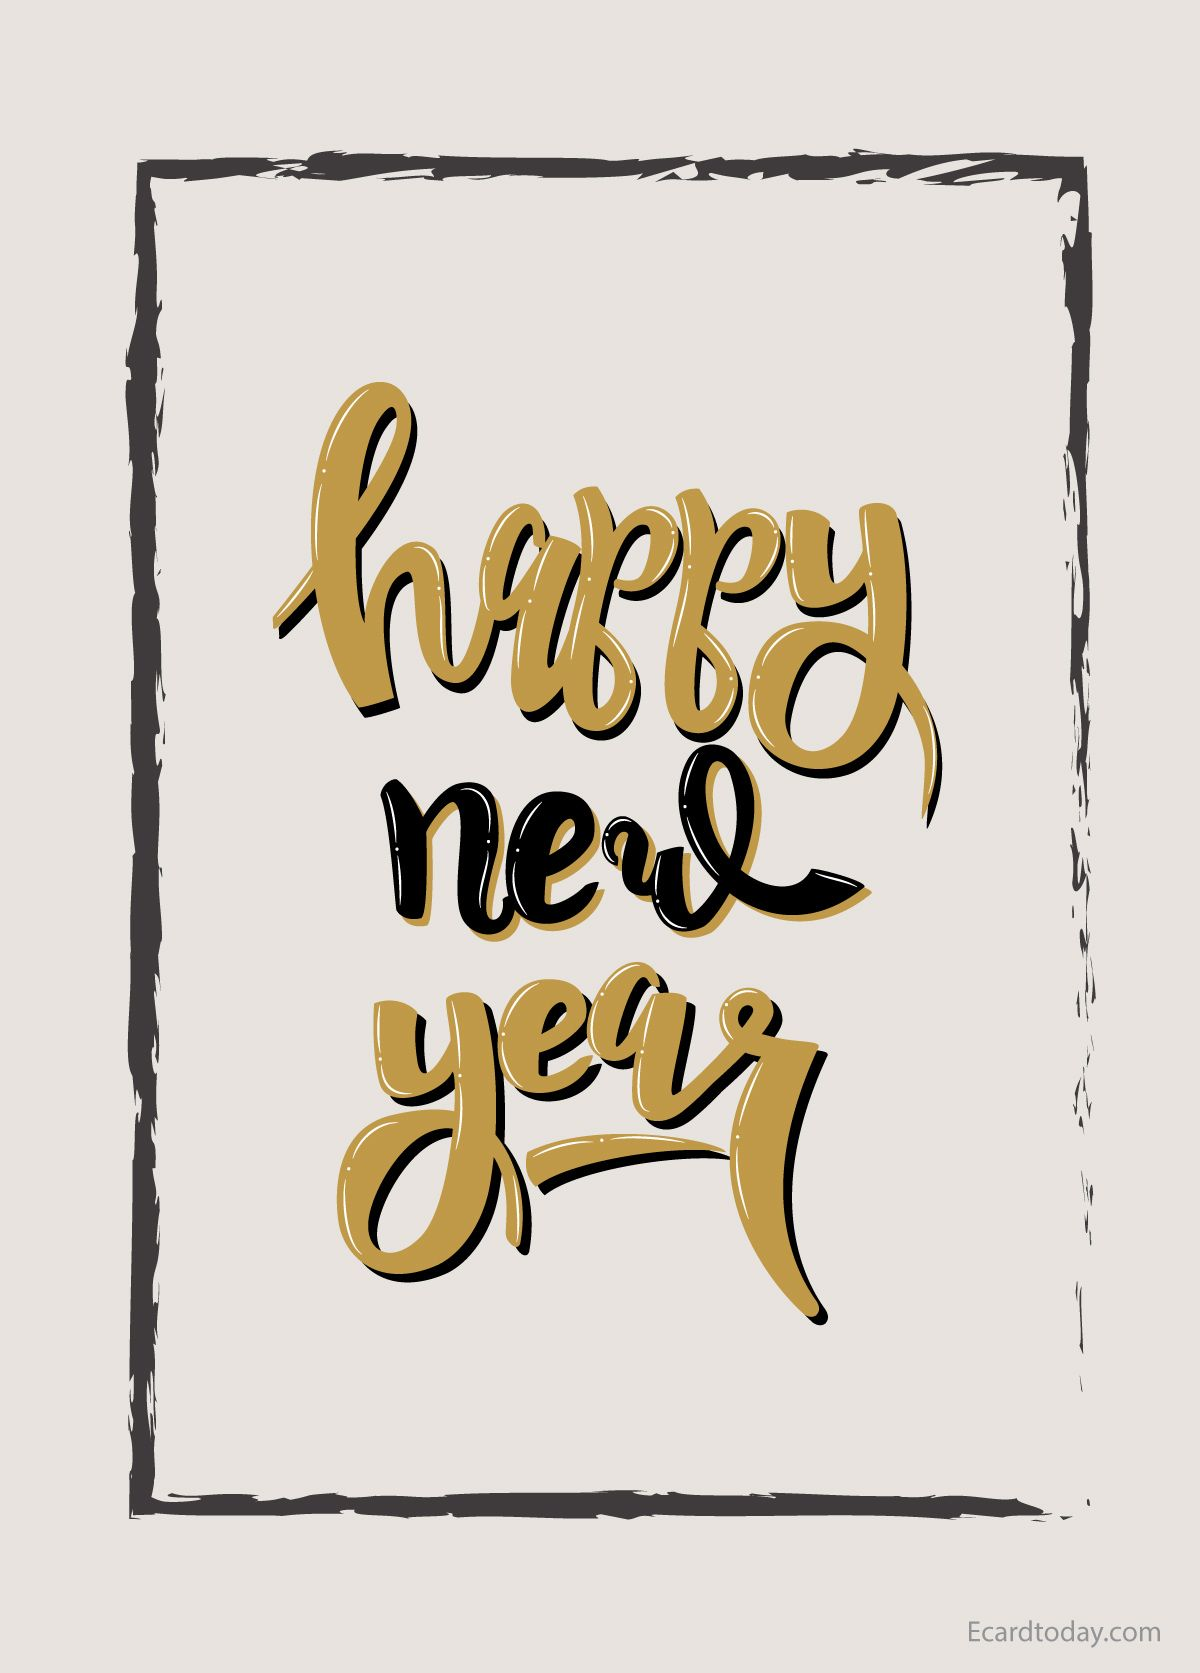 Best Happy New Year Images 2020 ECard Today in 2020